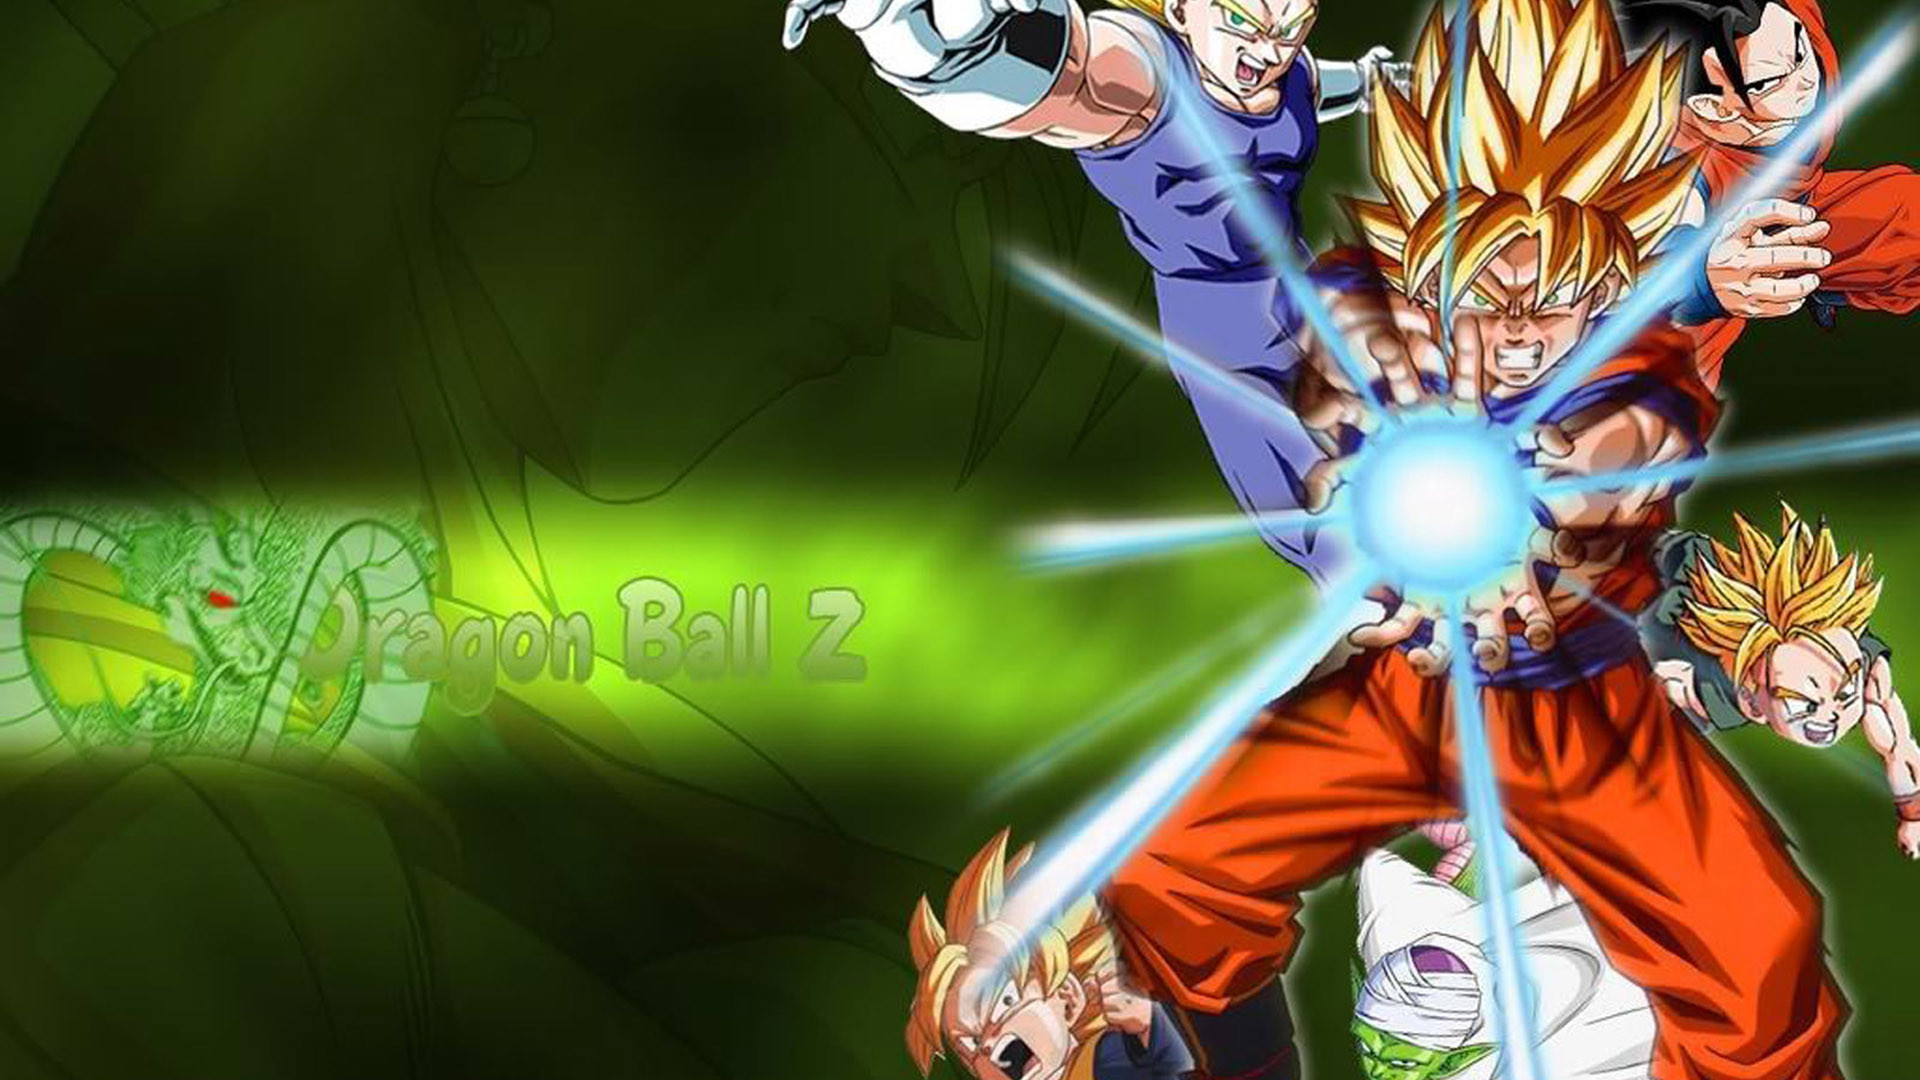 1920x1080 Get free high quality HD wallpapers dragon ball z live wallpaper iphone